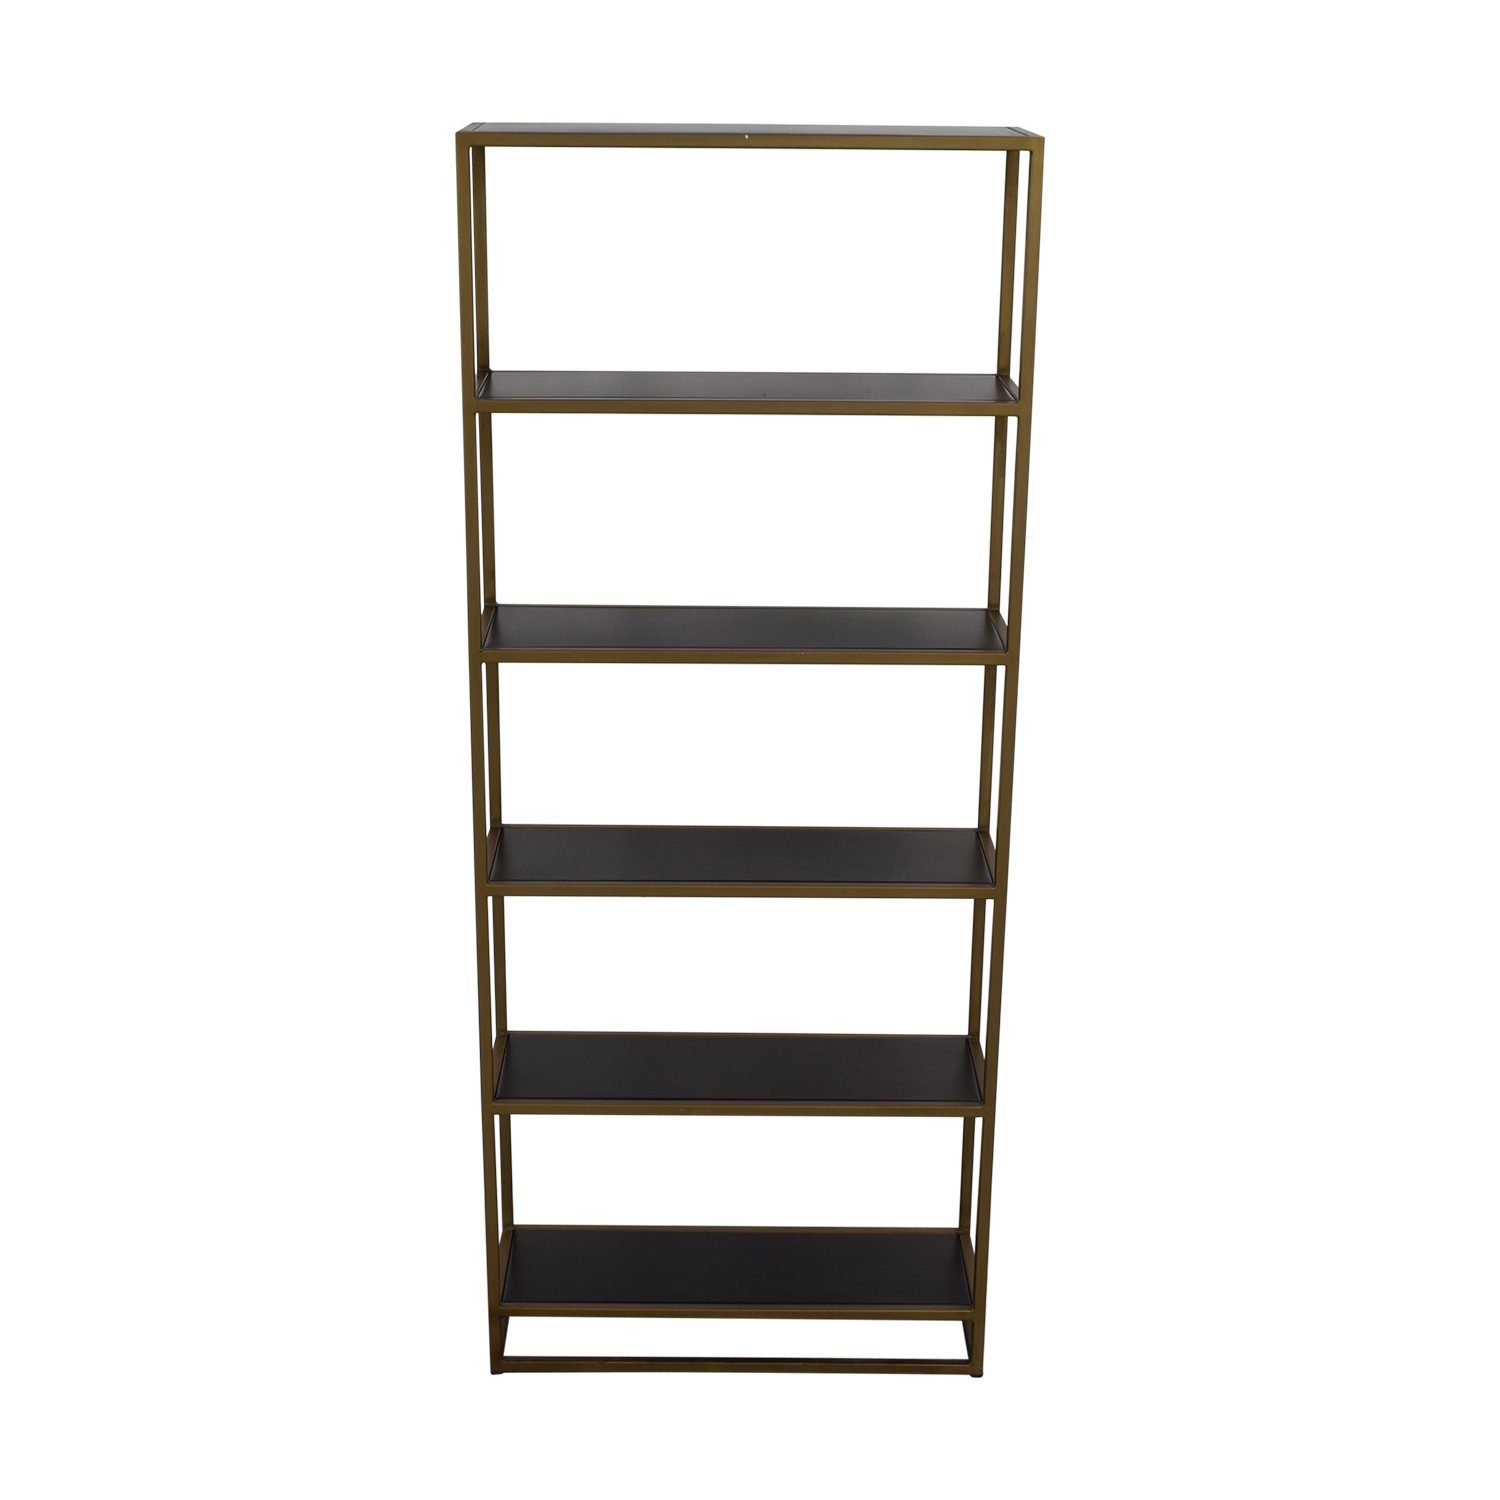 buy Crate & Barrel Brass Bookshelf Crate & Barrel Bookcases & Shelving